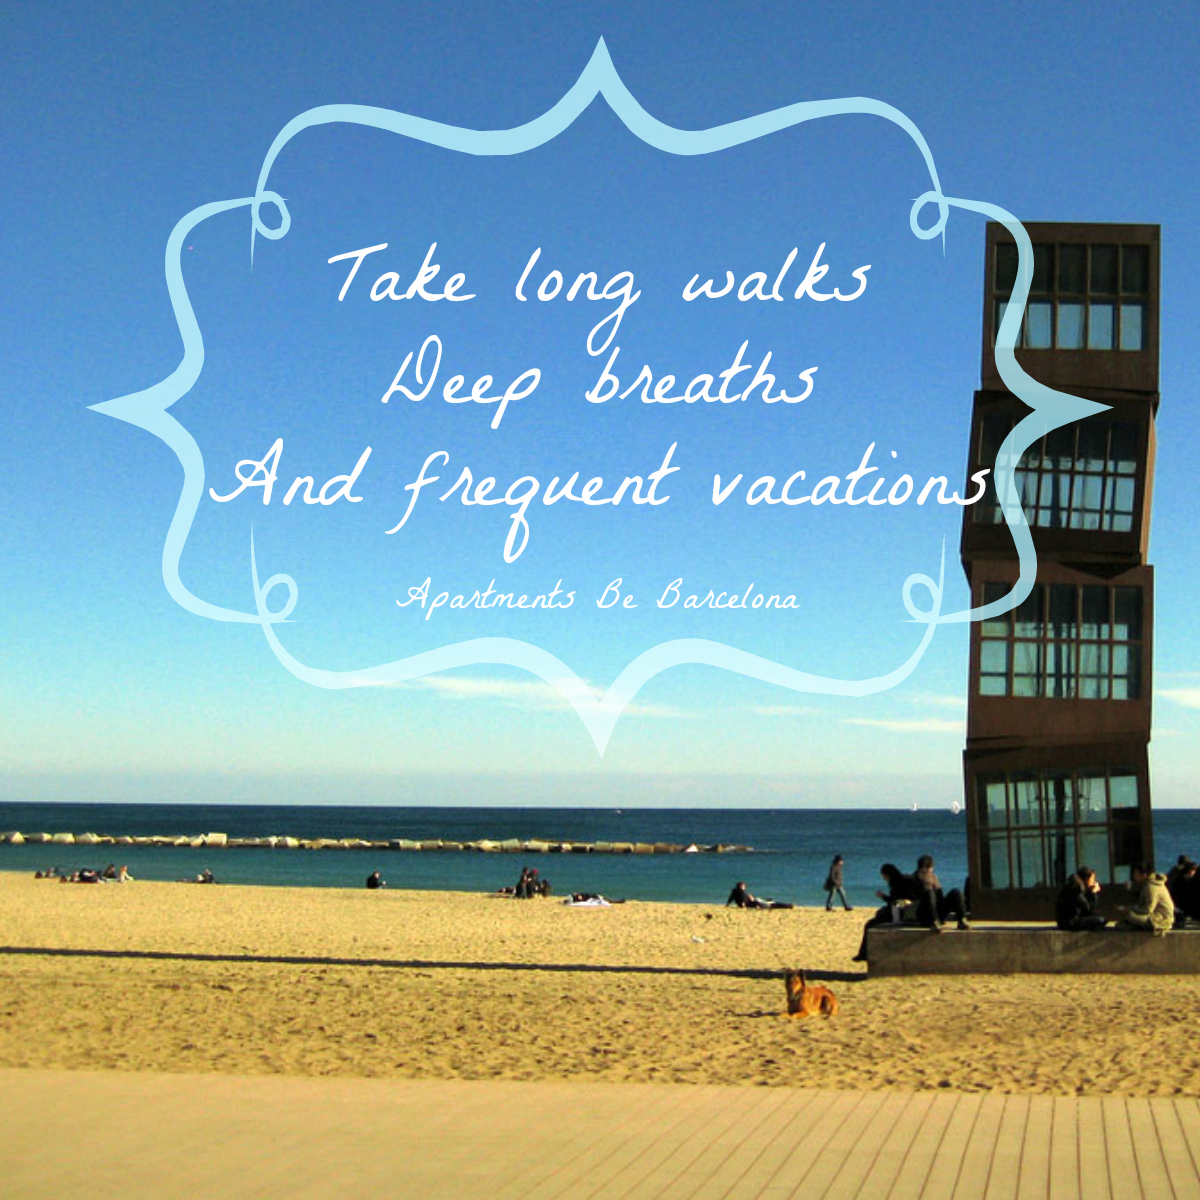 Take Long Walks Deep Breaths And Frequent Vacations Quote Vacation Barcelona Apartments BeBarcelona Relaxed Enjoy